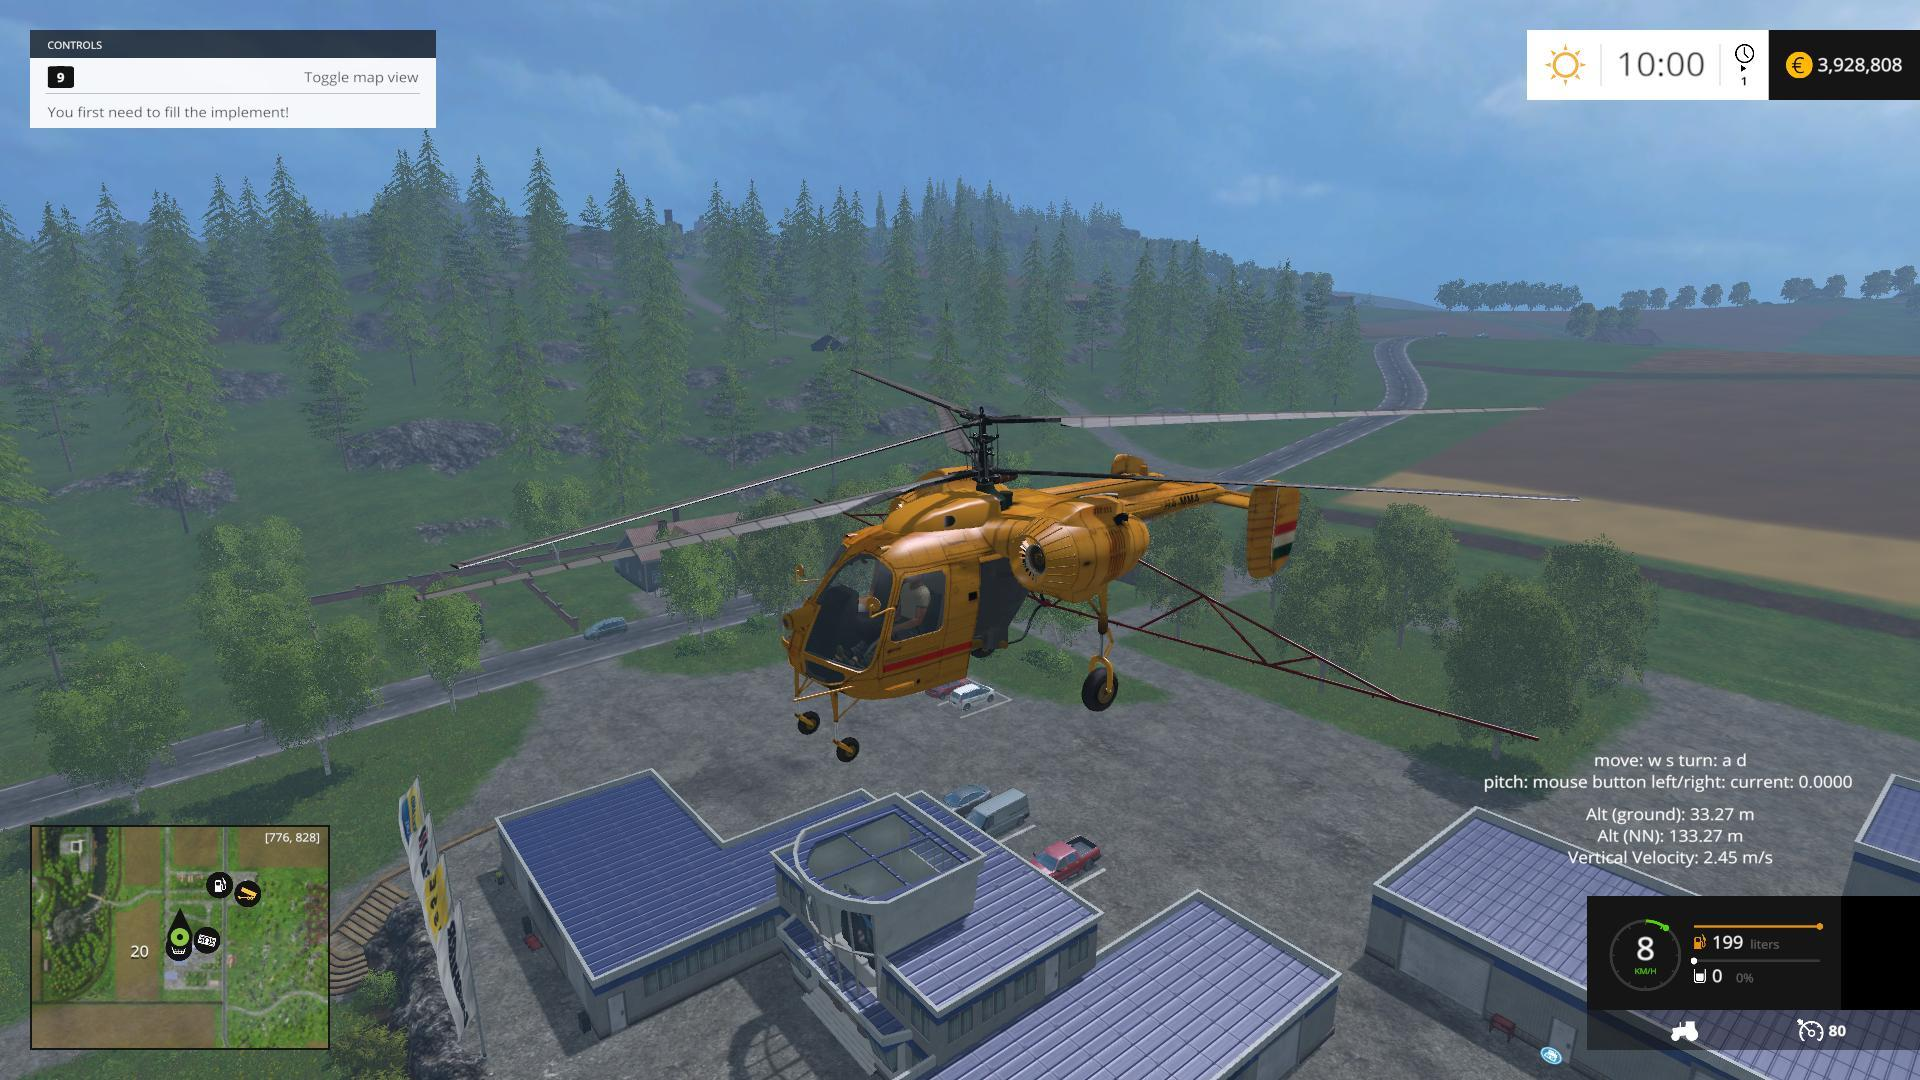 helikopter-ka26-v3-by-sp_1